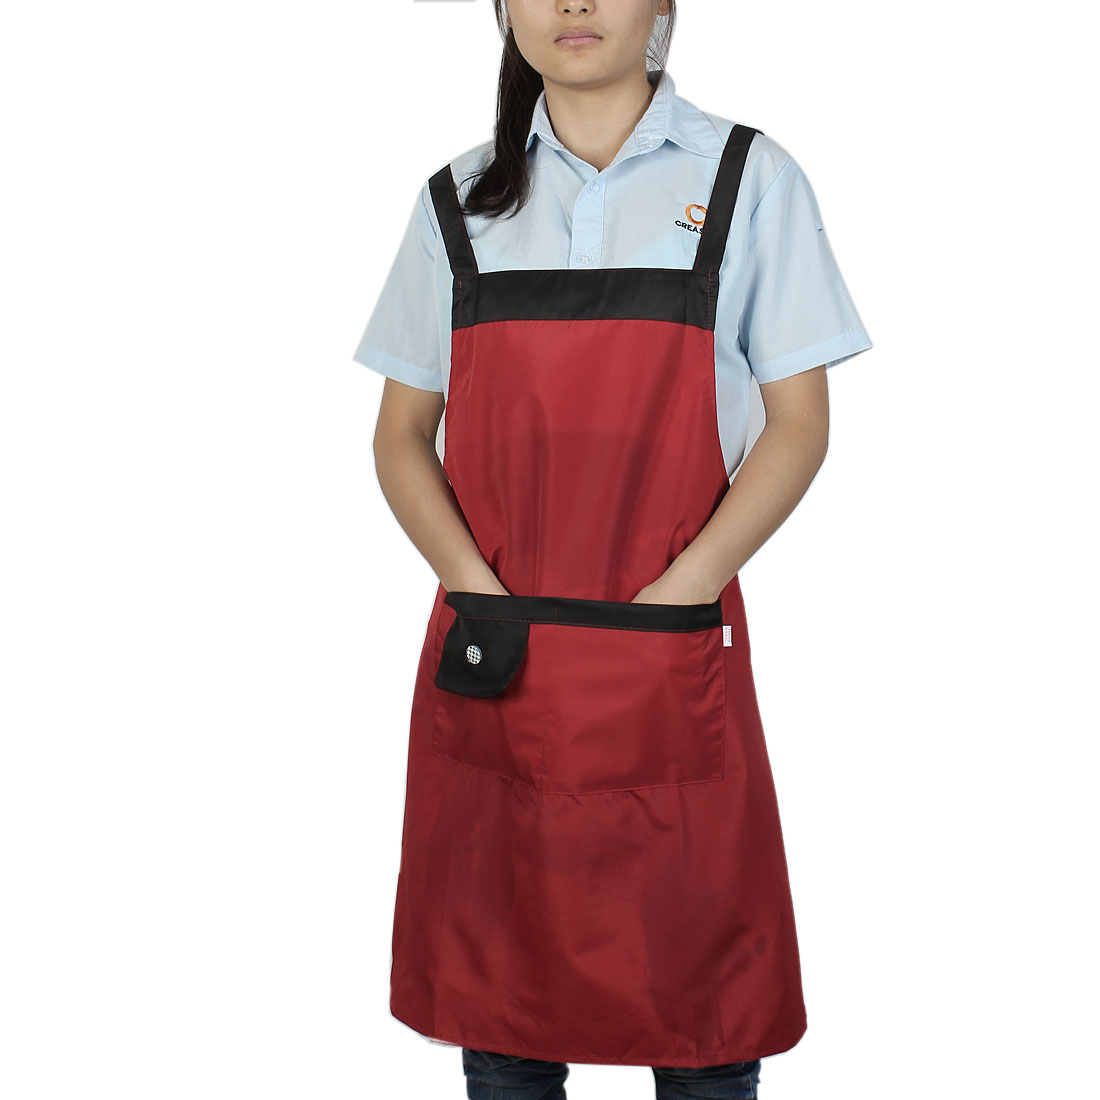 Household Kitchen Waterproof Black Red Cooking Apron Bib Dress w Pockets